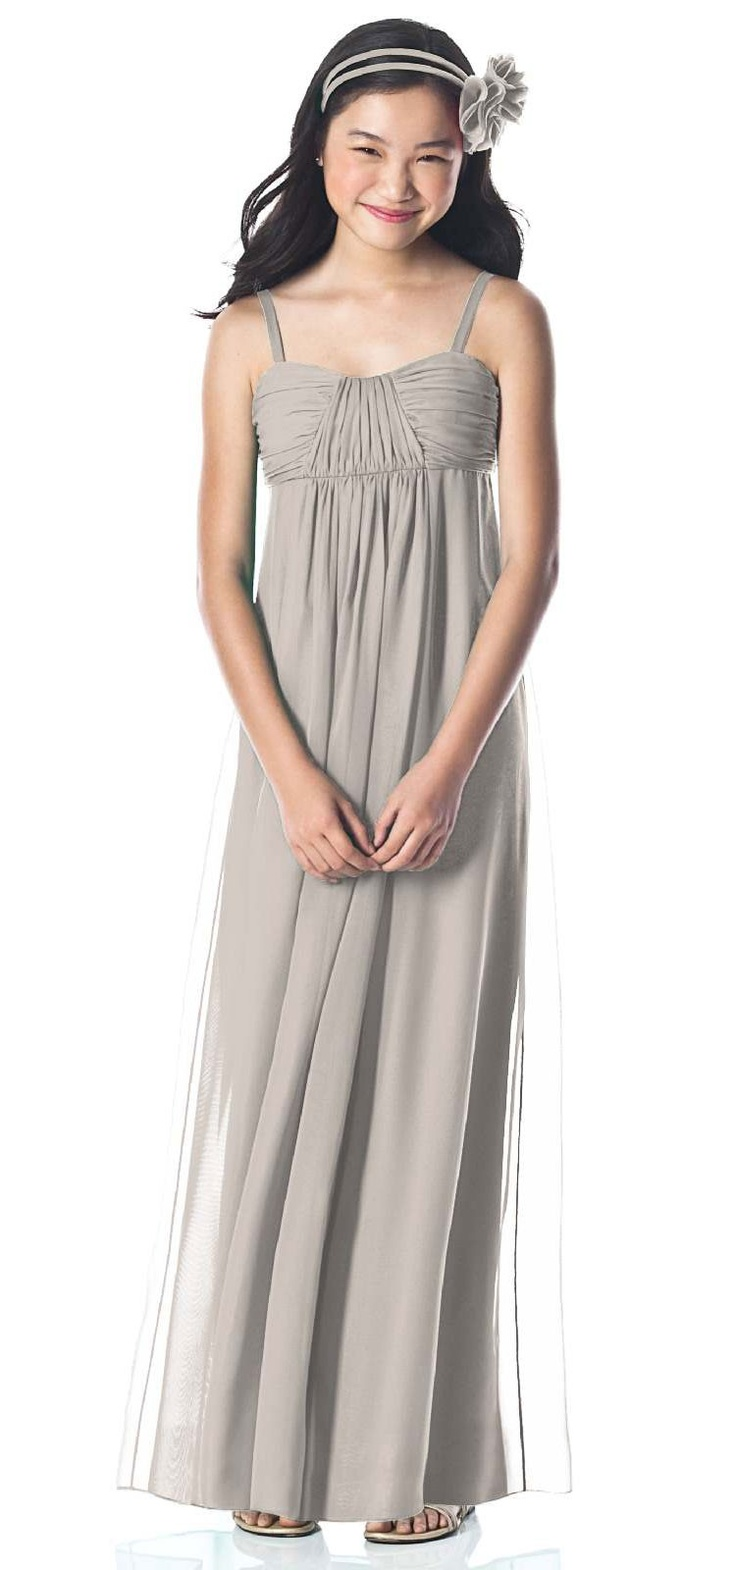 114 best wedding dresses images on pinterest couture party in lavender dessy bridesmaid dresses style jr835 chiffon weddington way weddington way ombrellifo Gallery